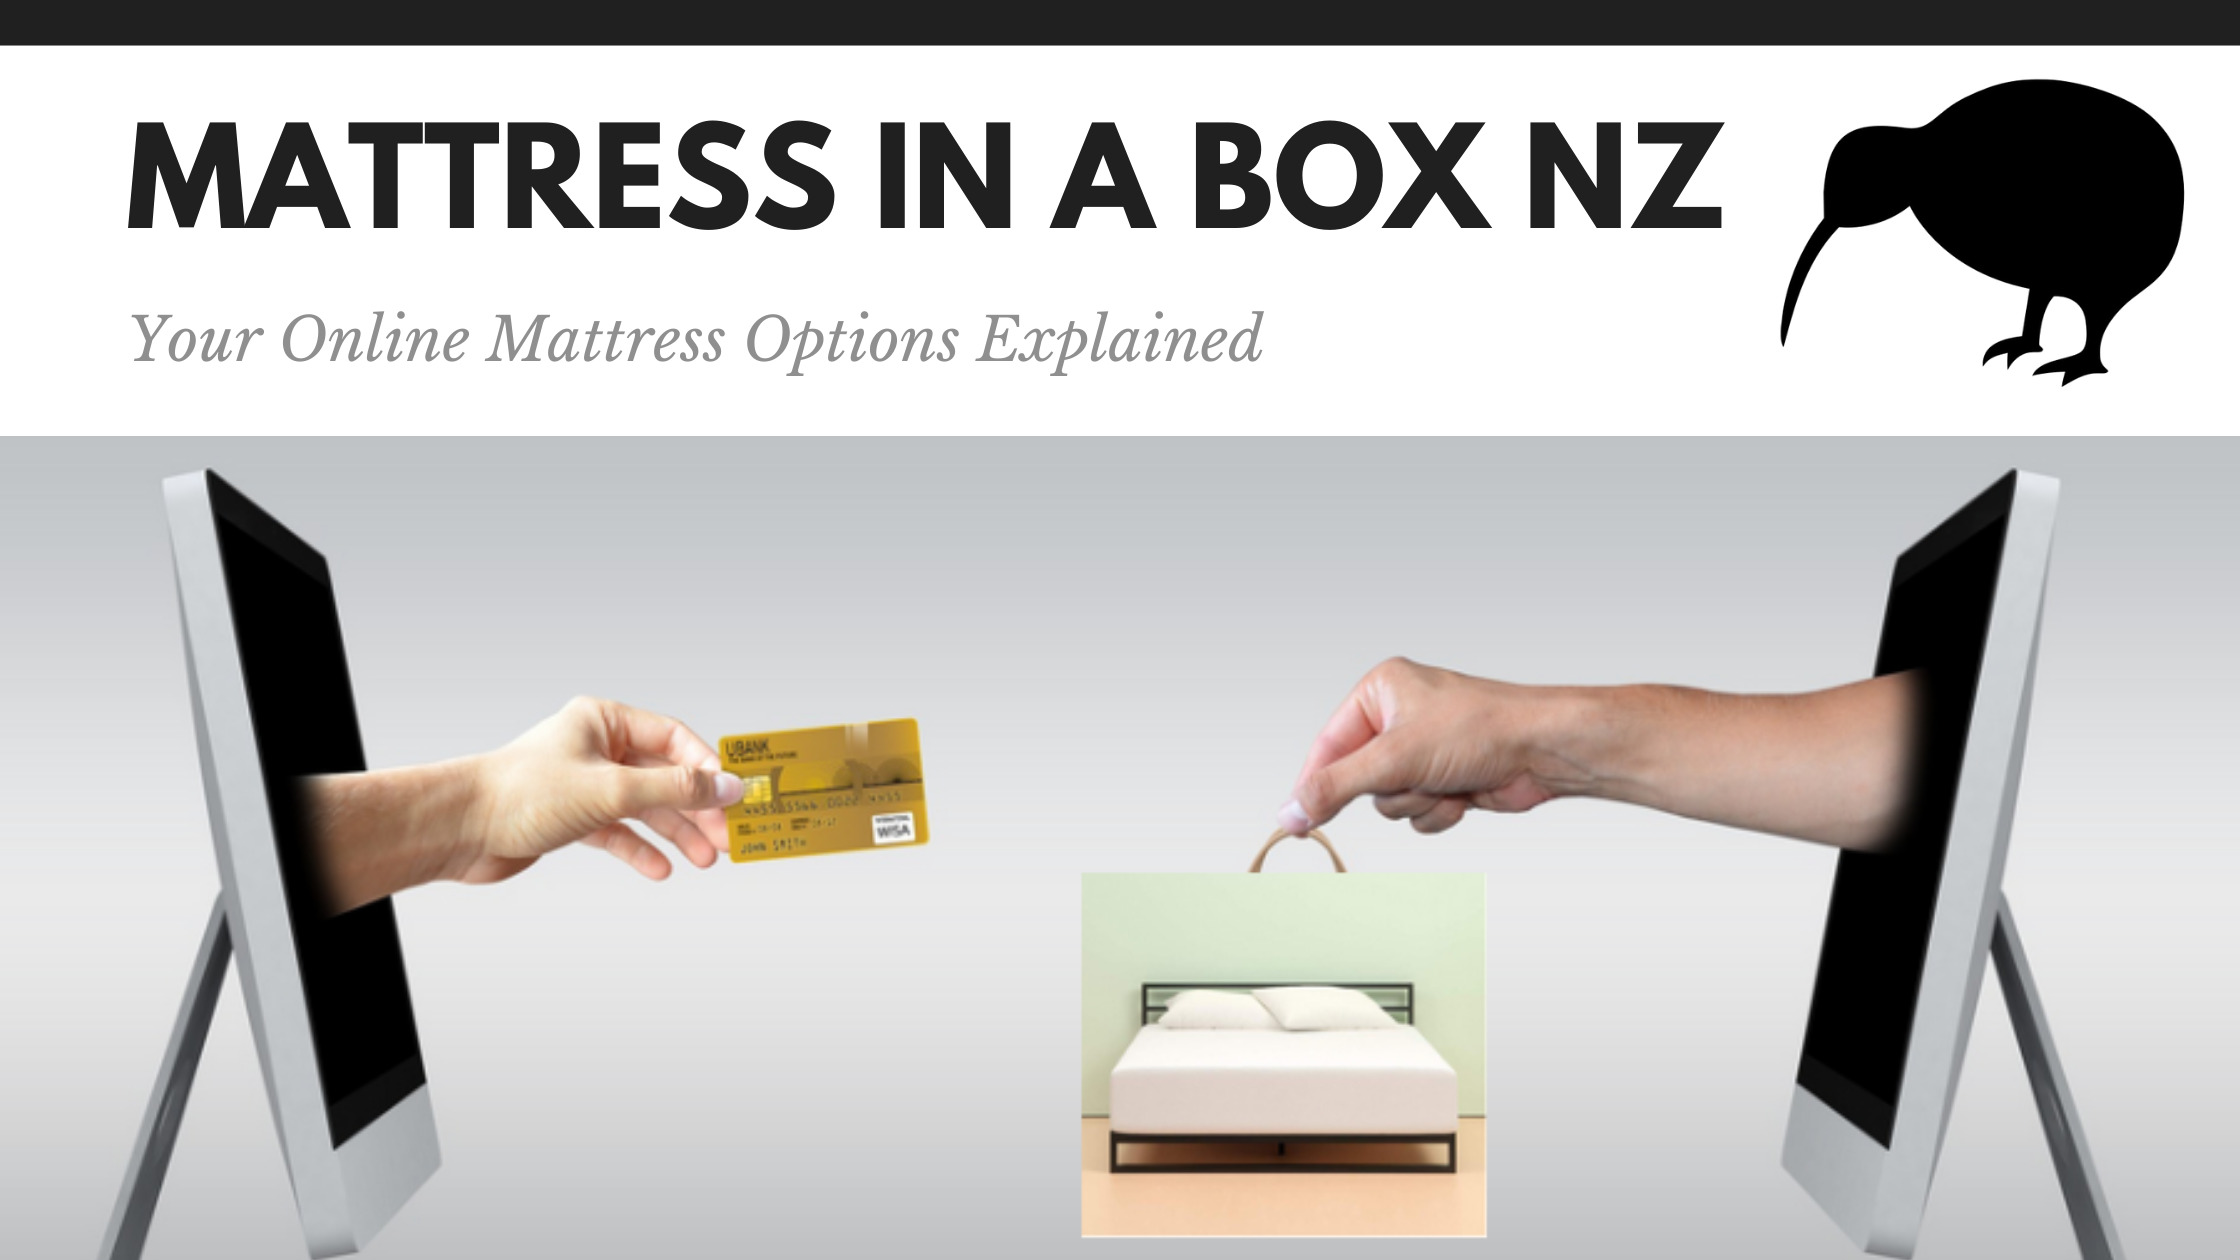 Mattress In A Box NZ - Cover Image